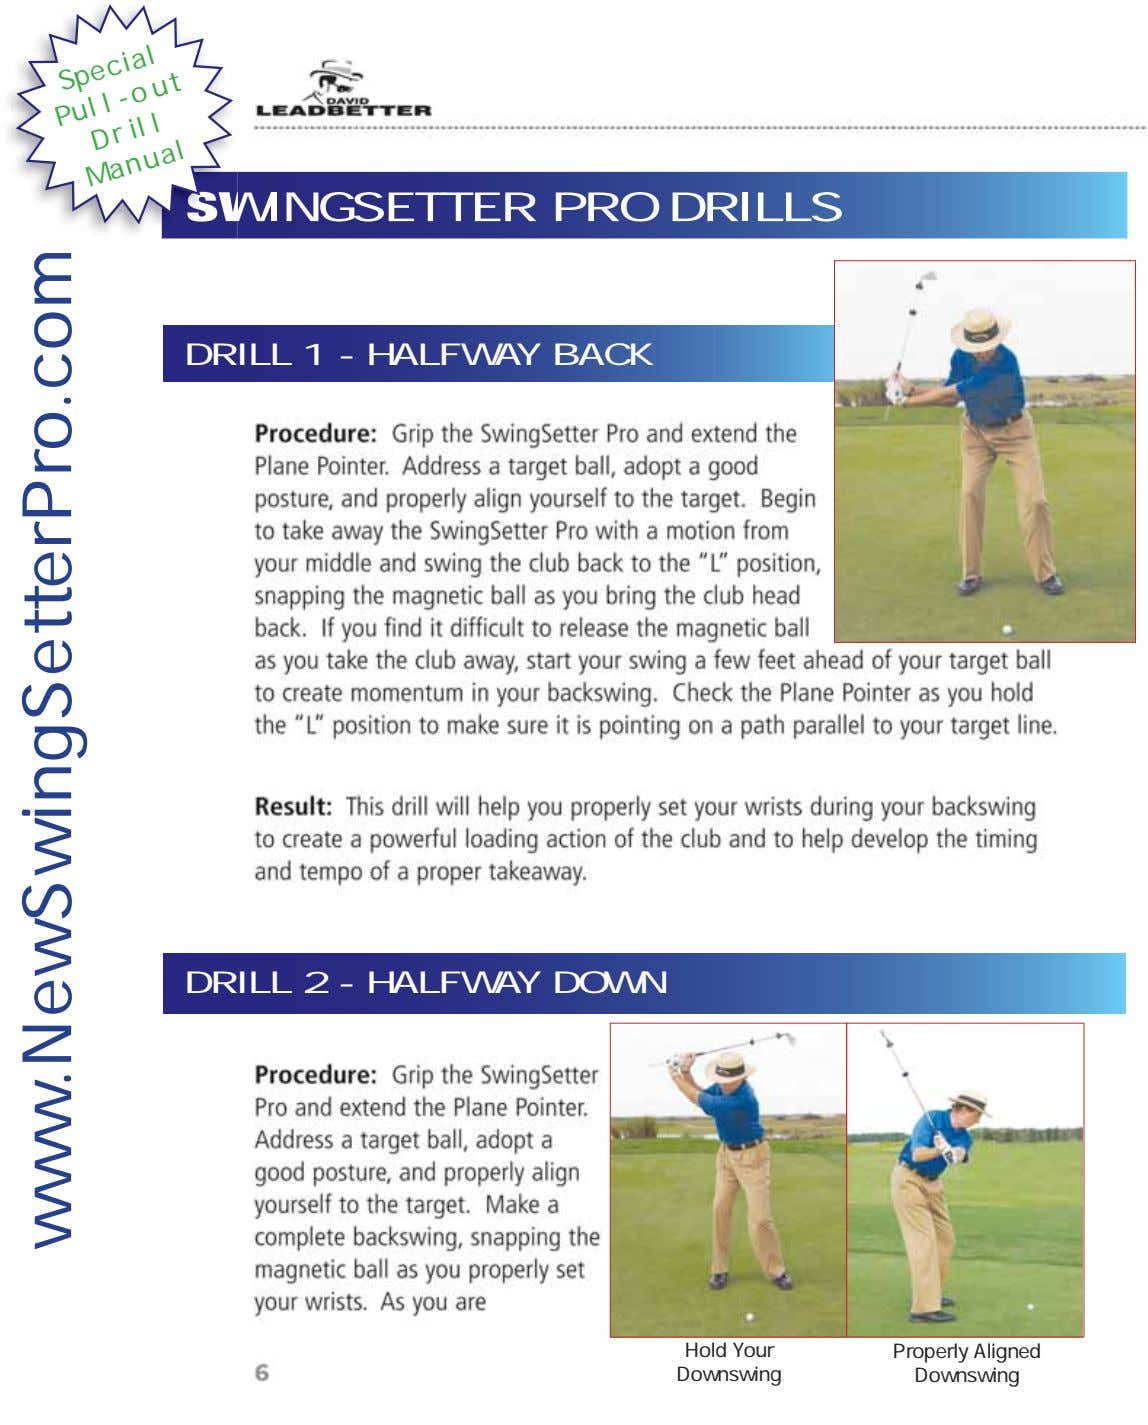 Special Pull-out SWINGSETTER PRO DRILLS Drill Manual DRILL 1 - HALFWAY BACK DRILL 2 -